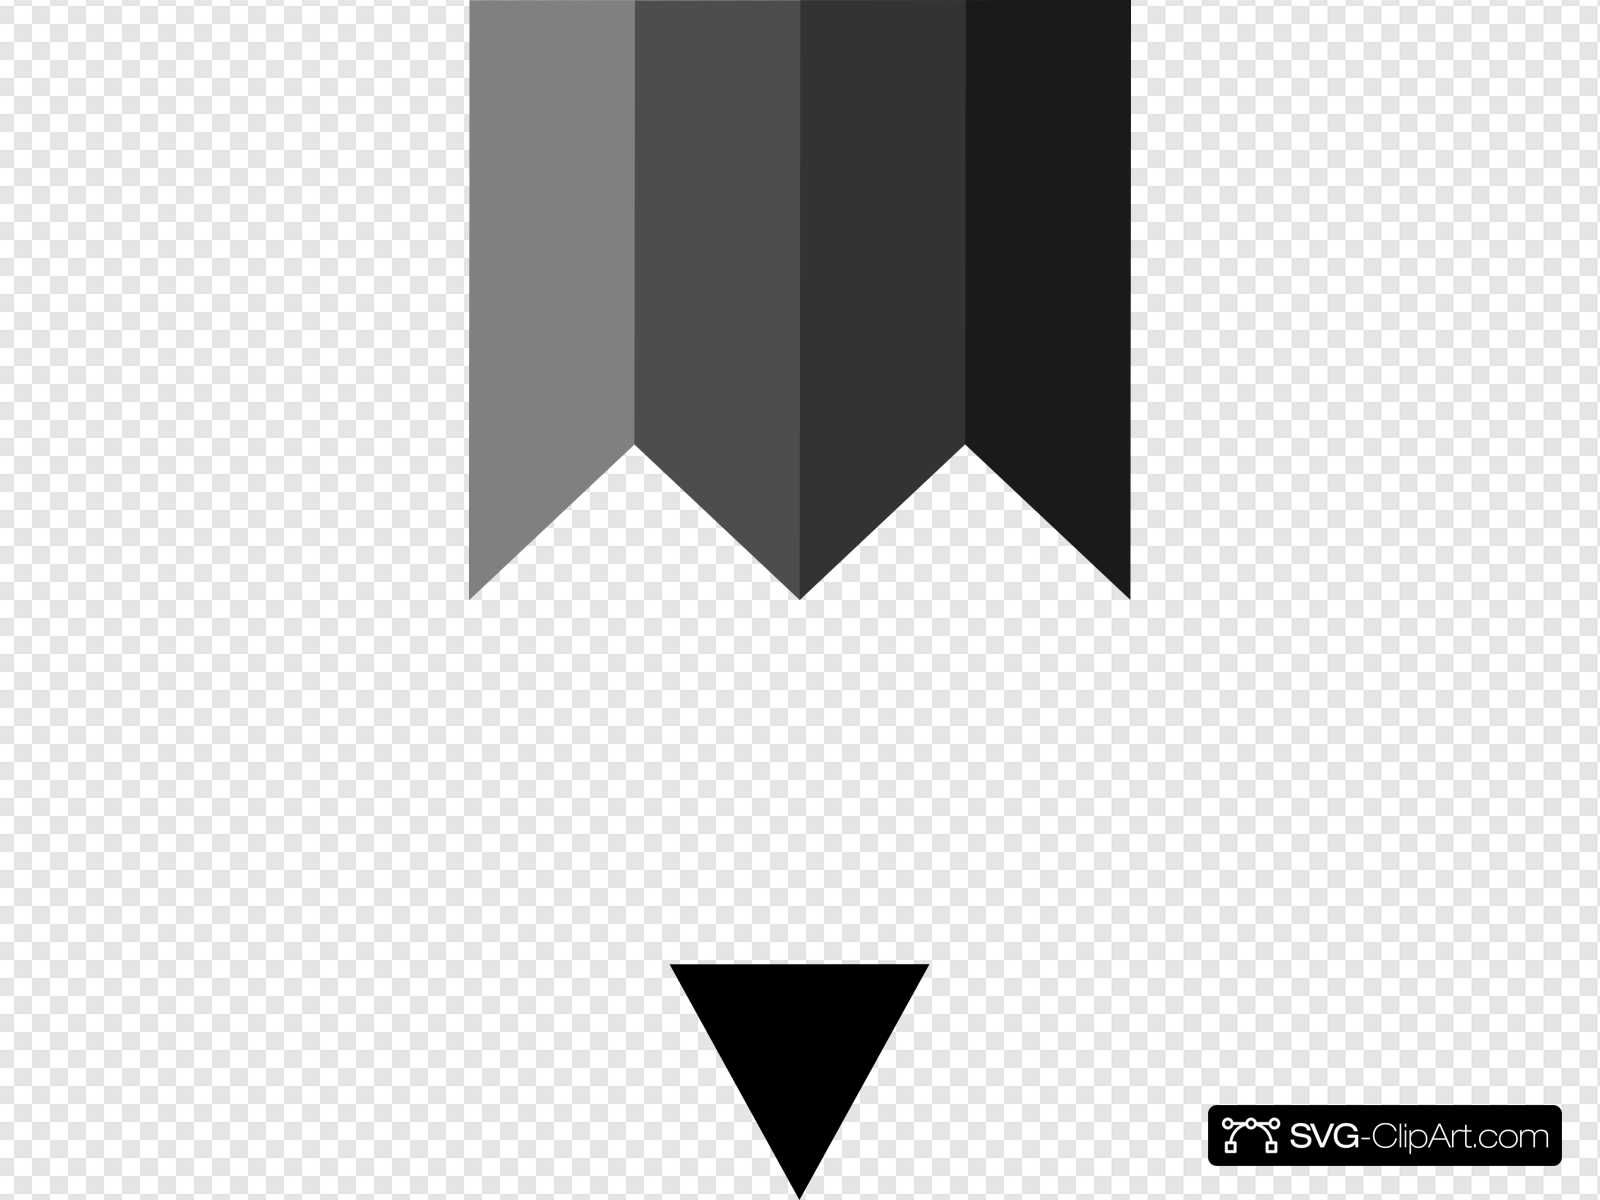 Abstract Pencil Clip art, Icon and SVG.